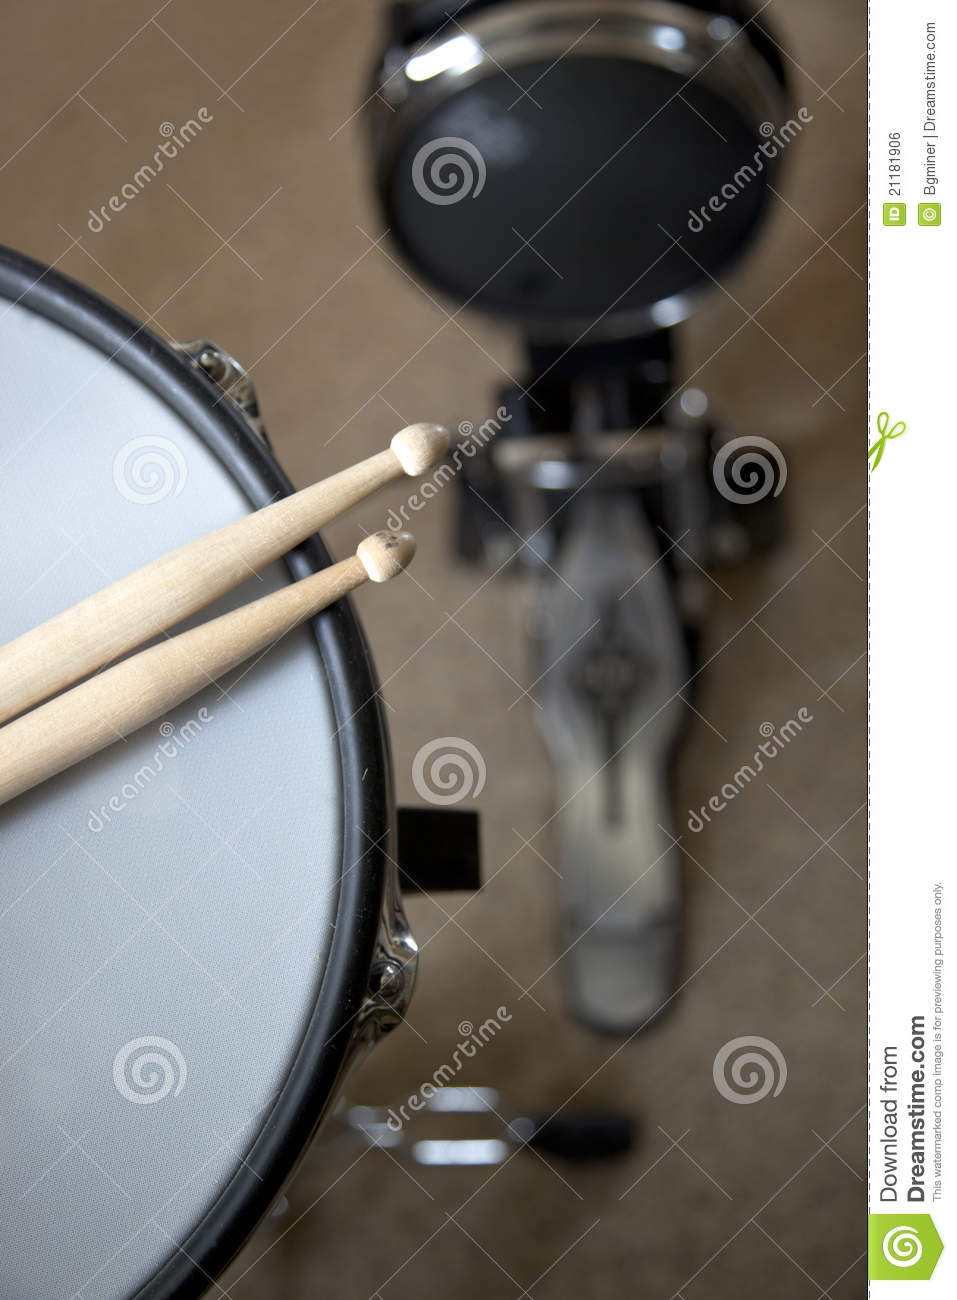 Electronic drums with sticks